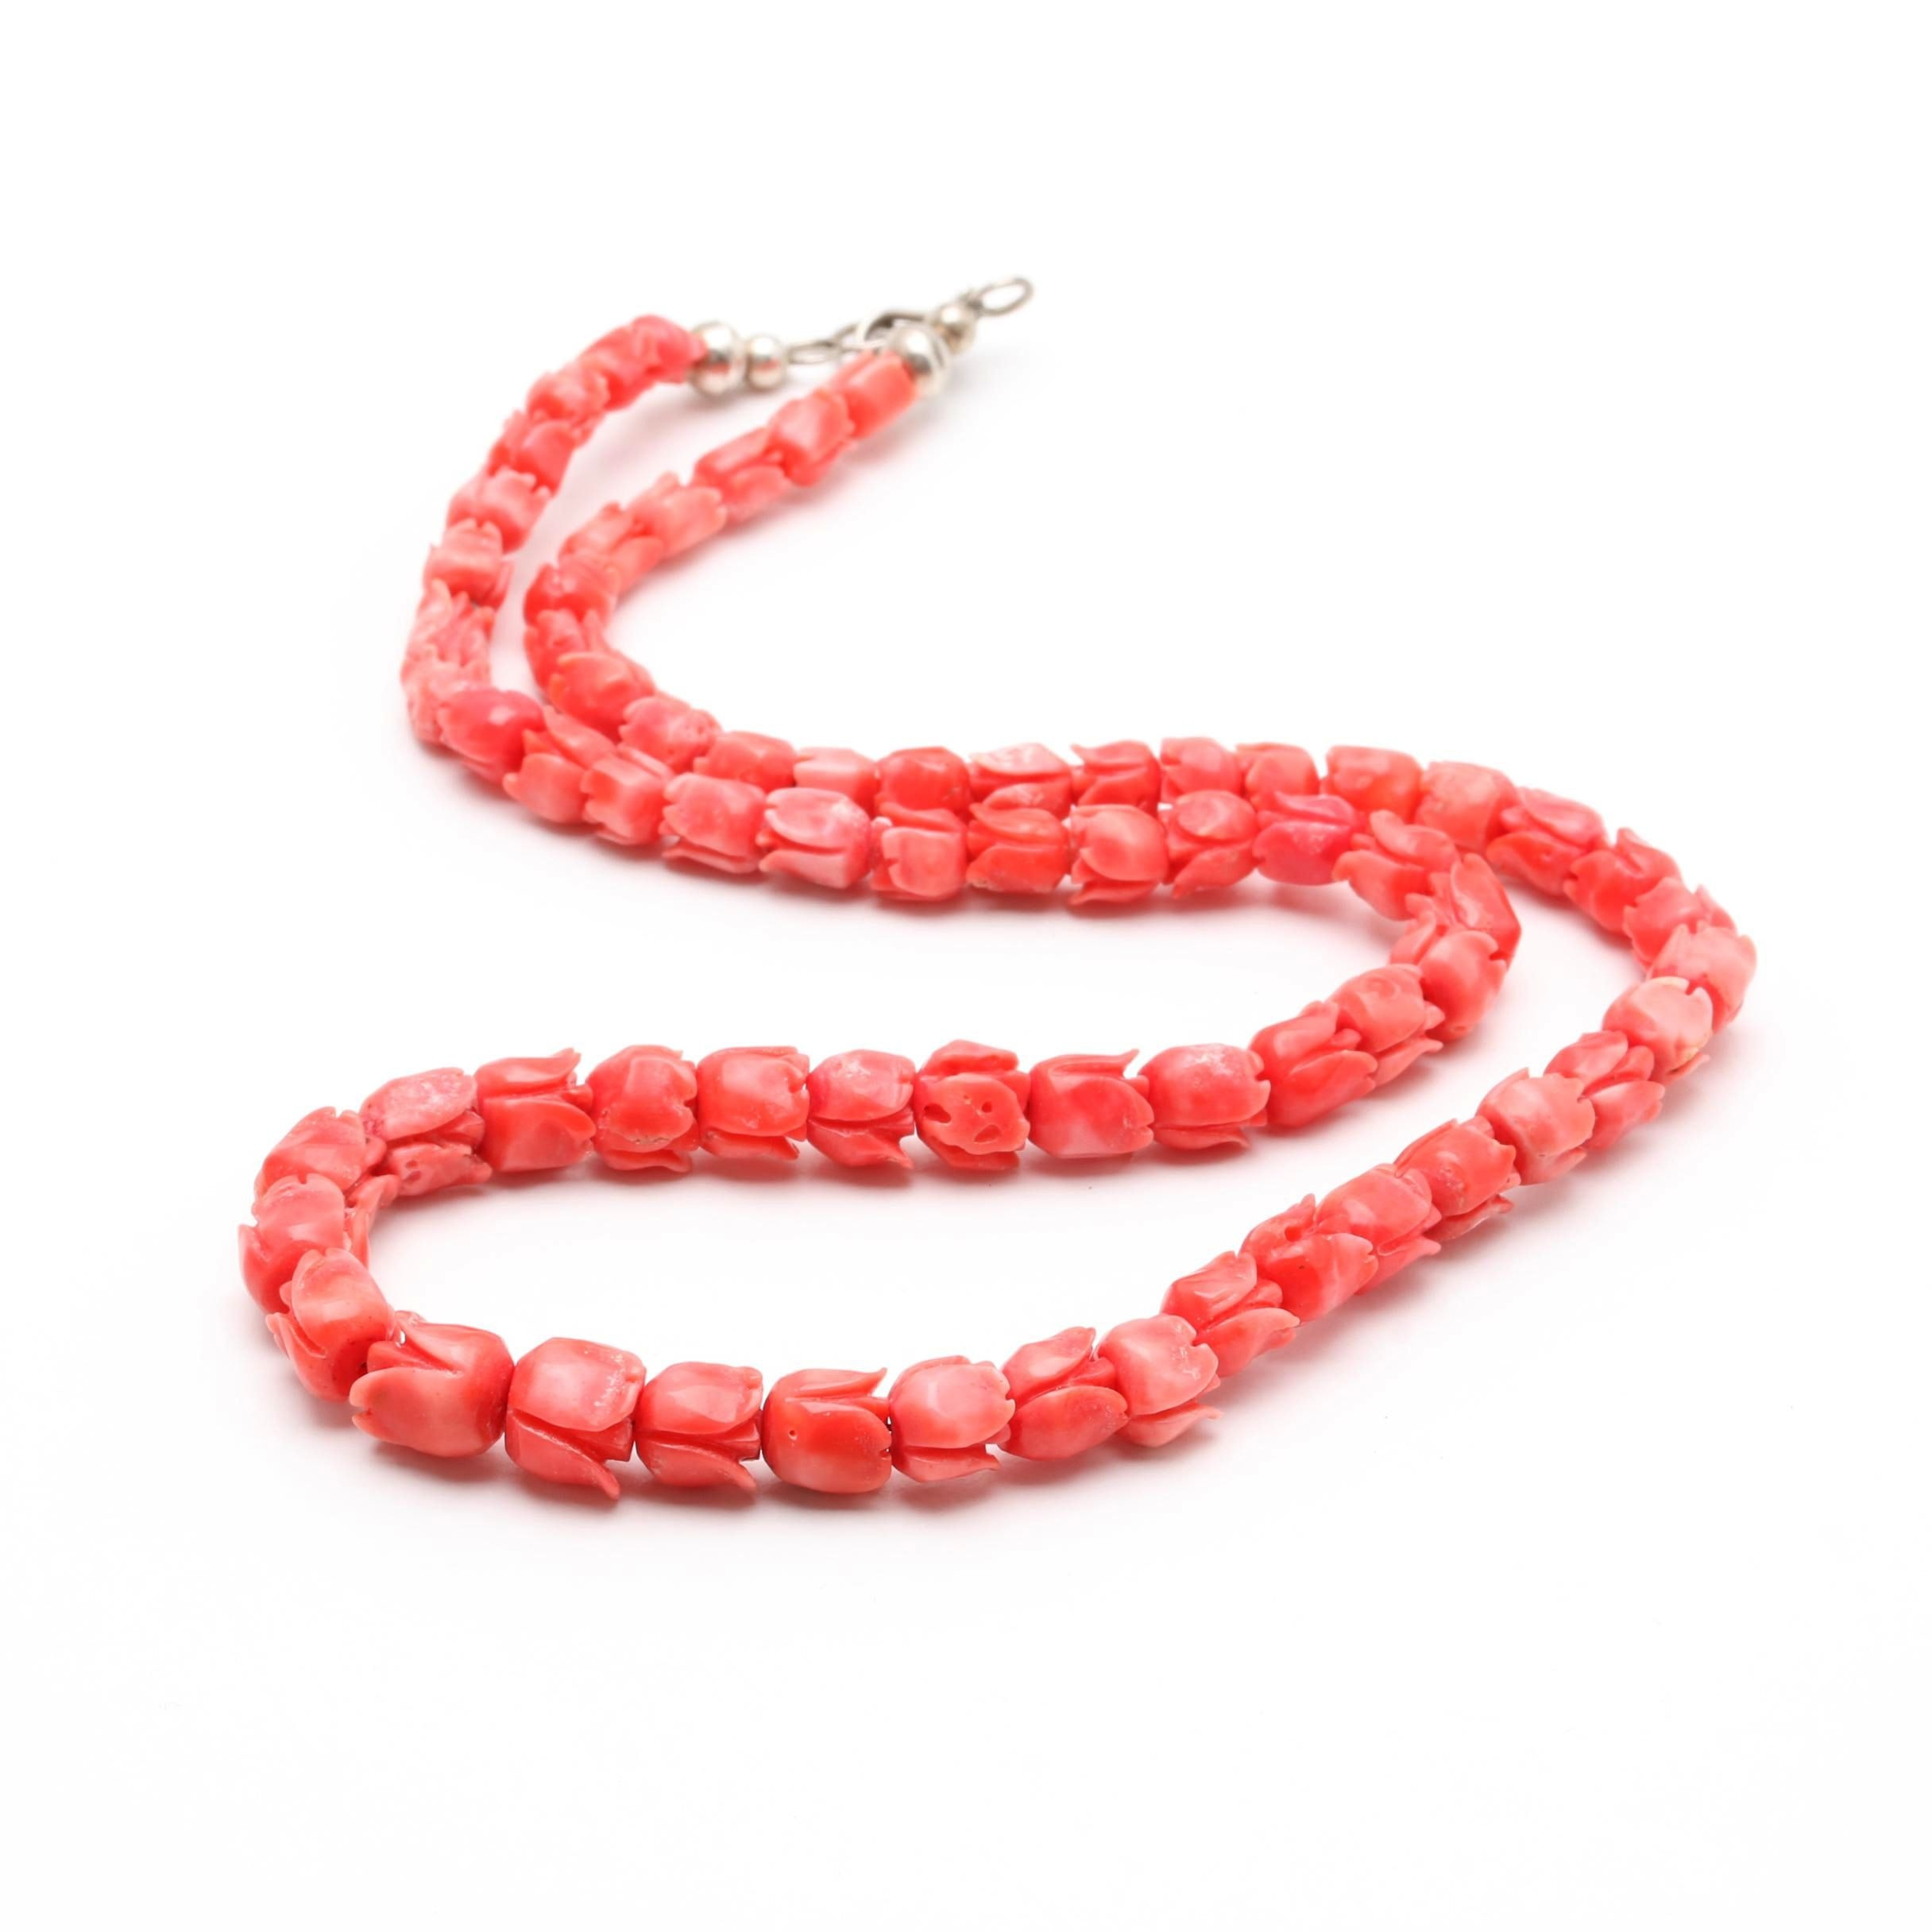 900 Silver Carved Flower Coral Necklace